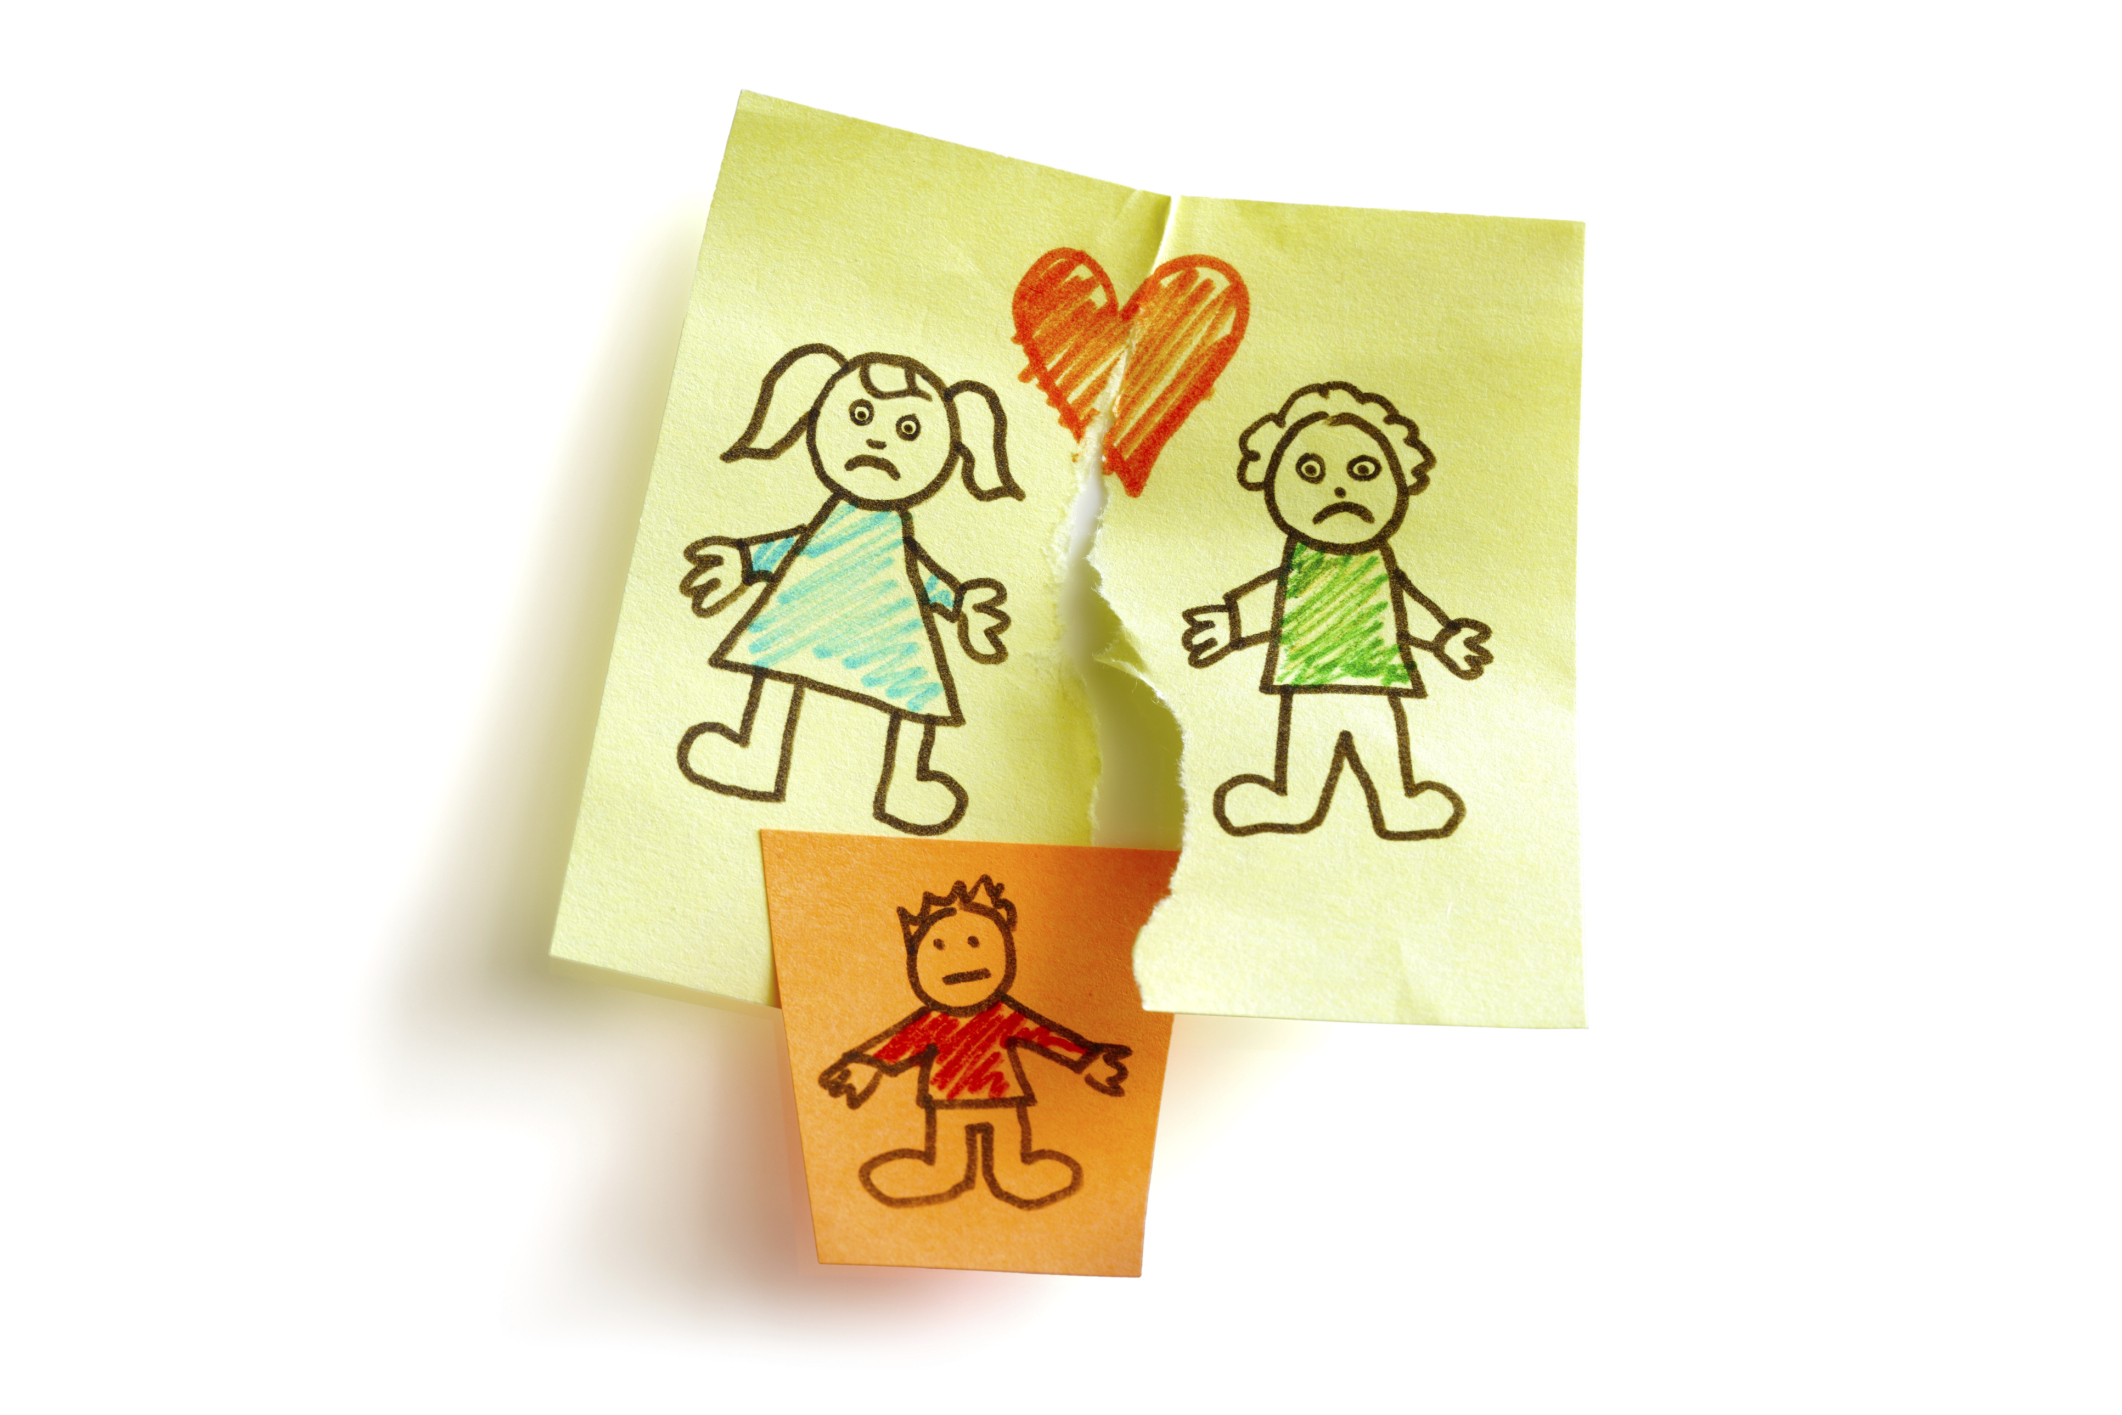 Divorce and Family Issues